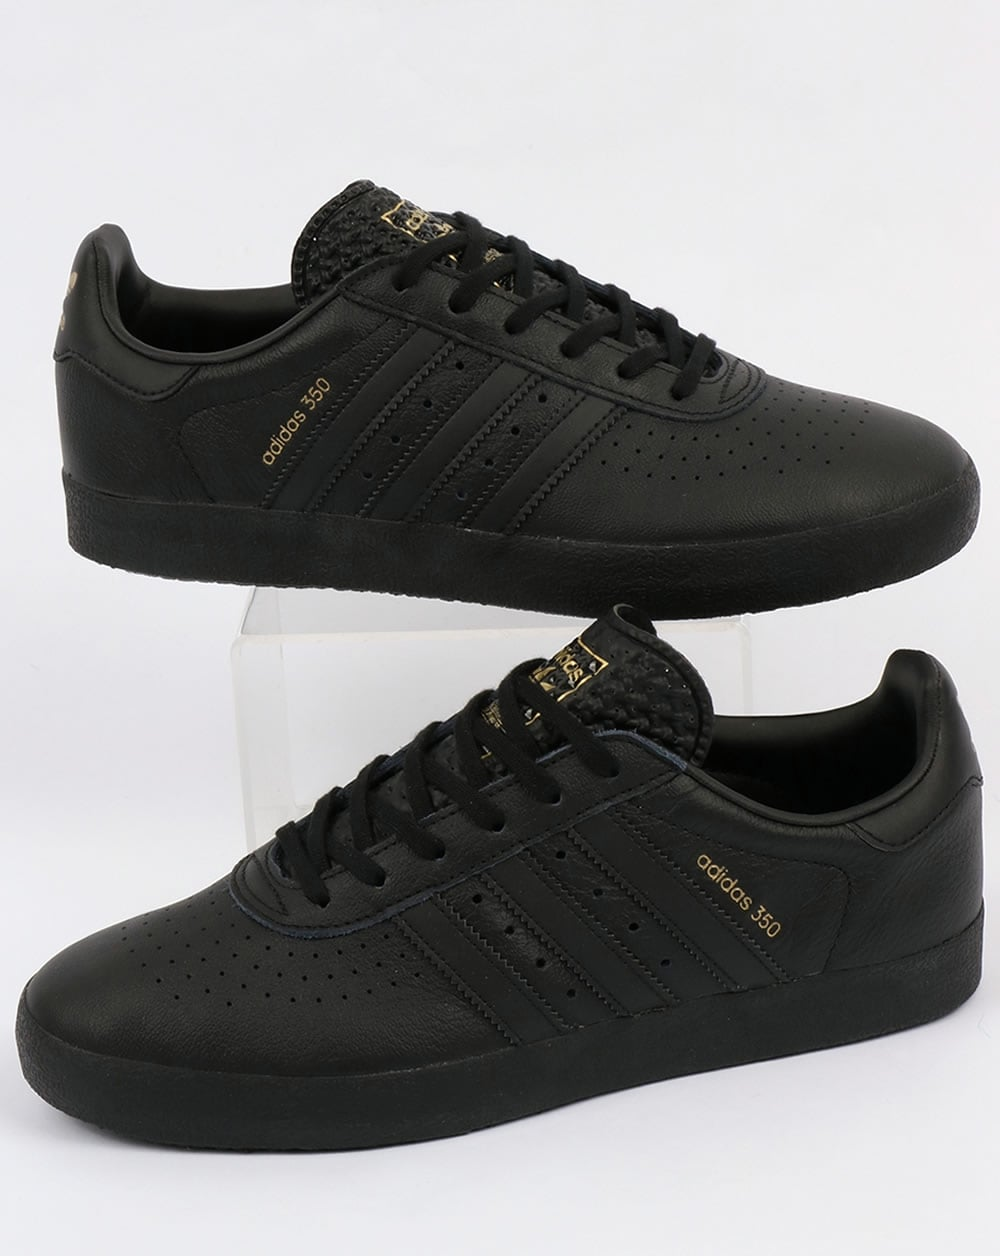 Adidas 350 Trainers Black,leather,shoes,originals,mens